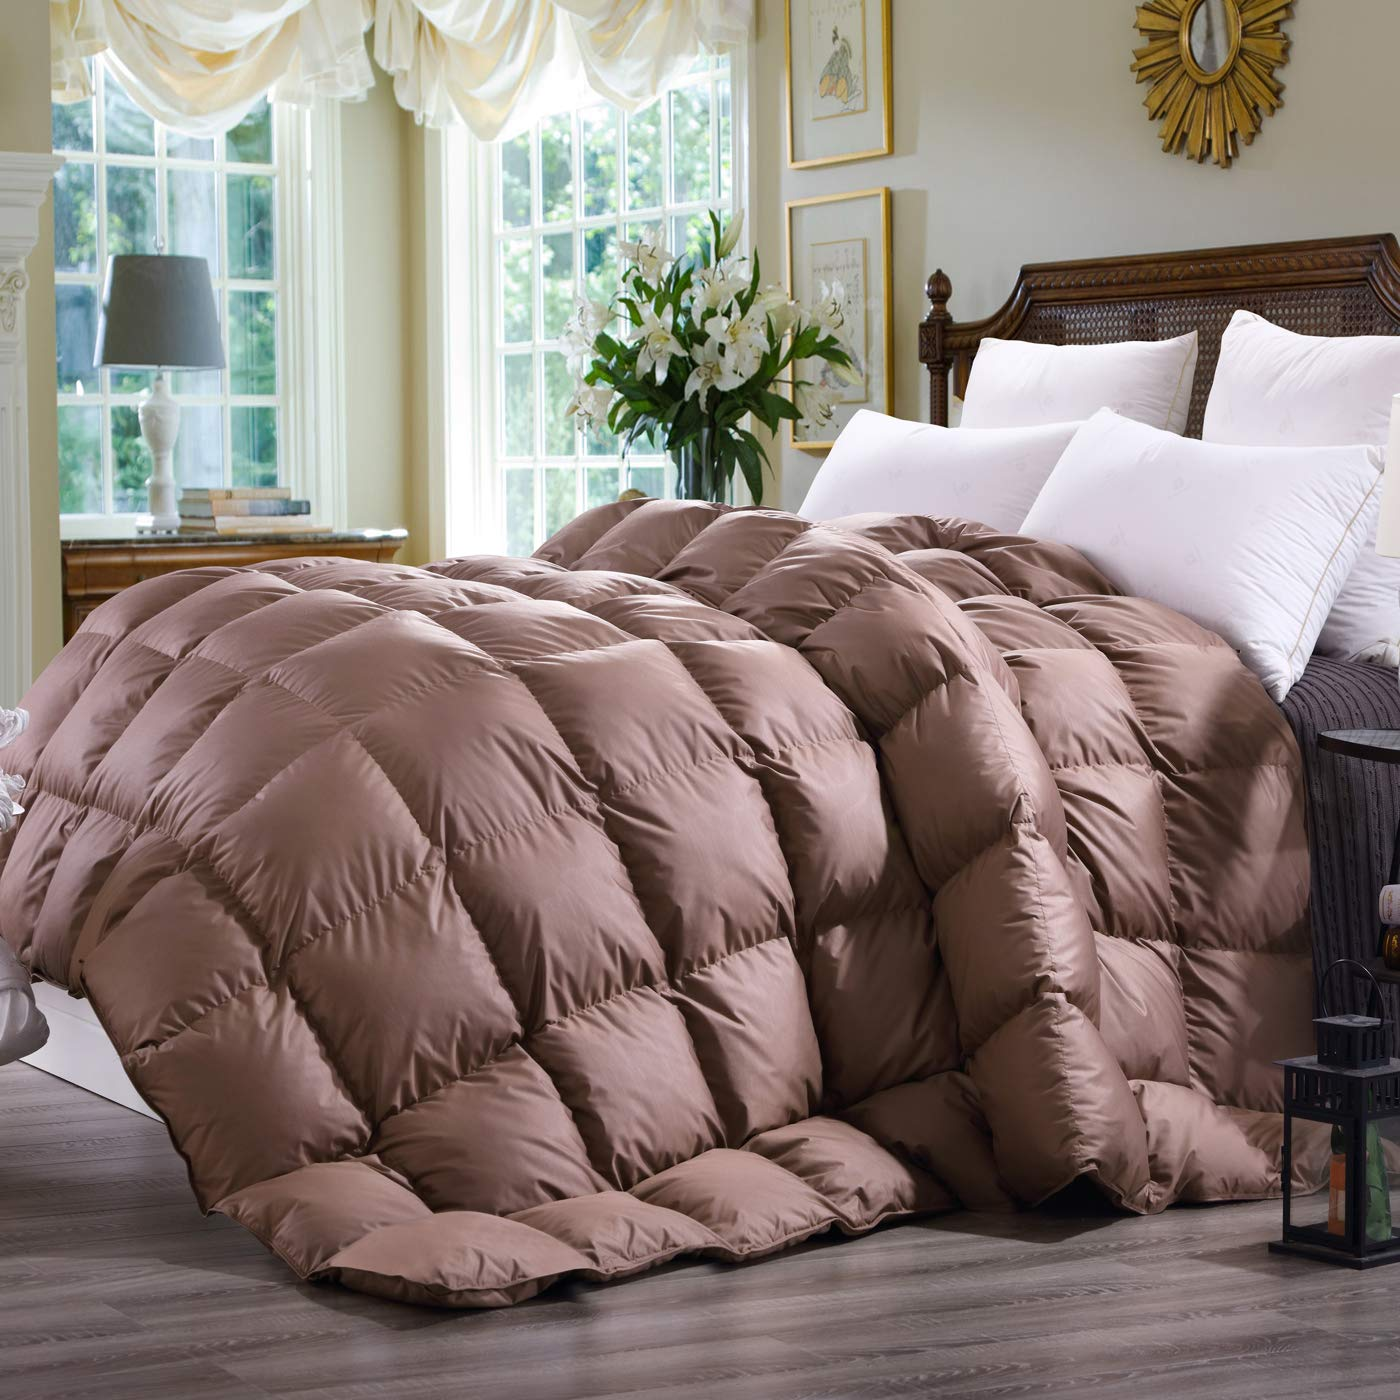 C&W Luxurious Queen Size Siberian Goose Down Comforter,Heavywarmth Winter Comforter,Down Comforter Queen Size,1200 TC-100% Egyptian Cotton Cover,750 Fill Power,60 oz Fill Weight, Brown Solid BNTC C&W Duvet04